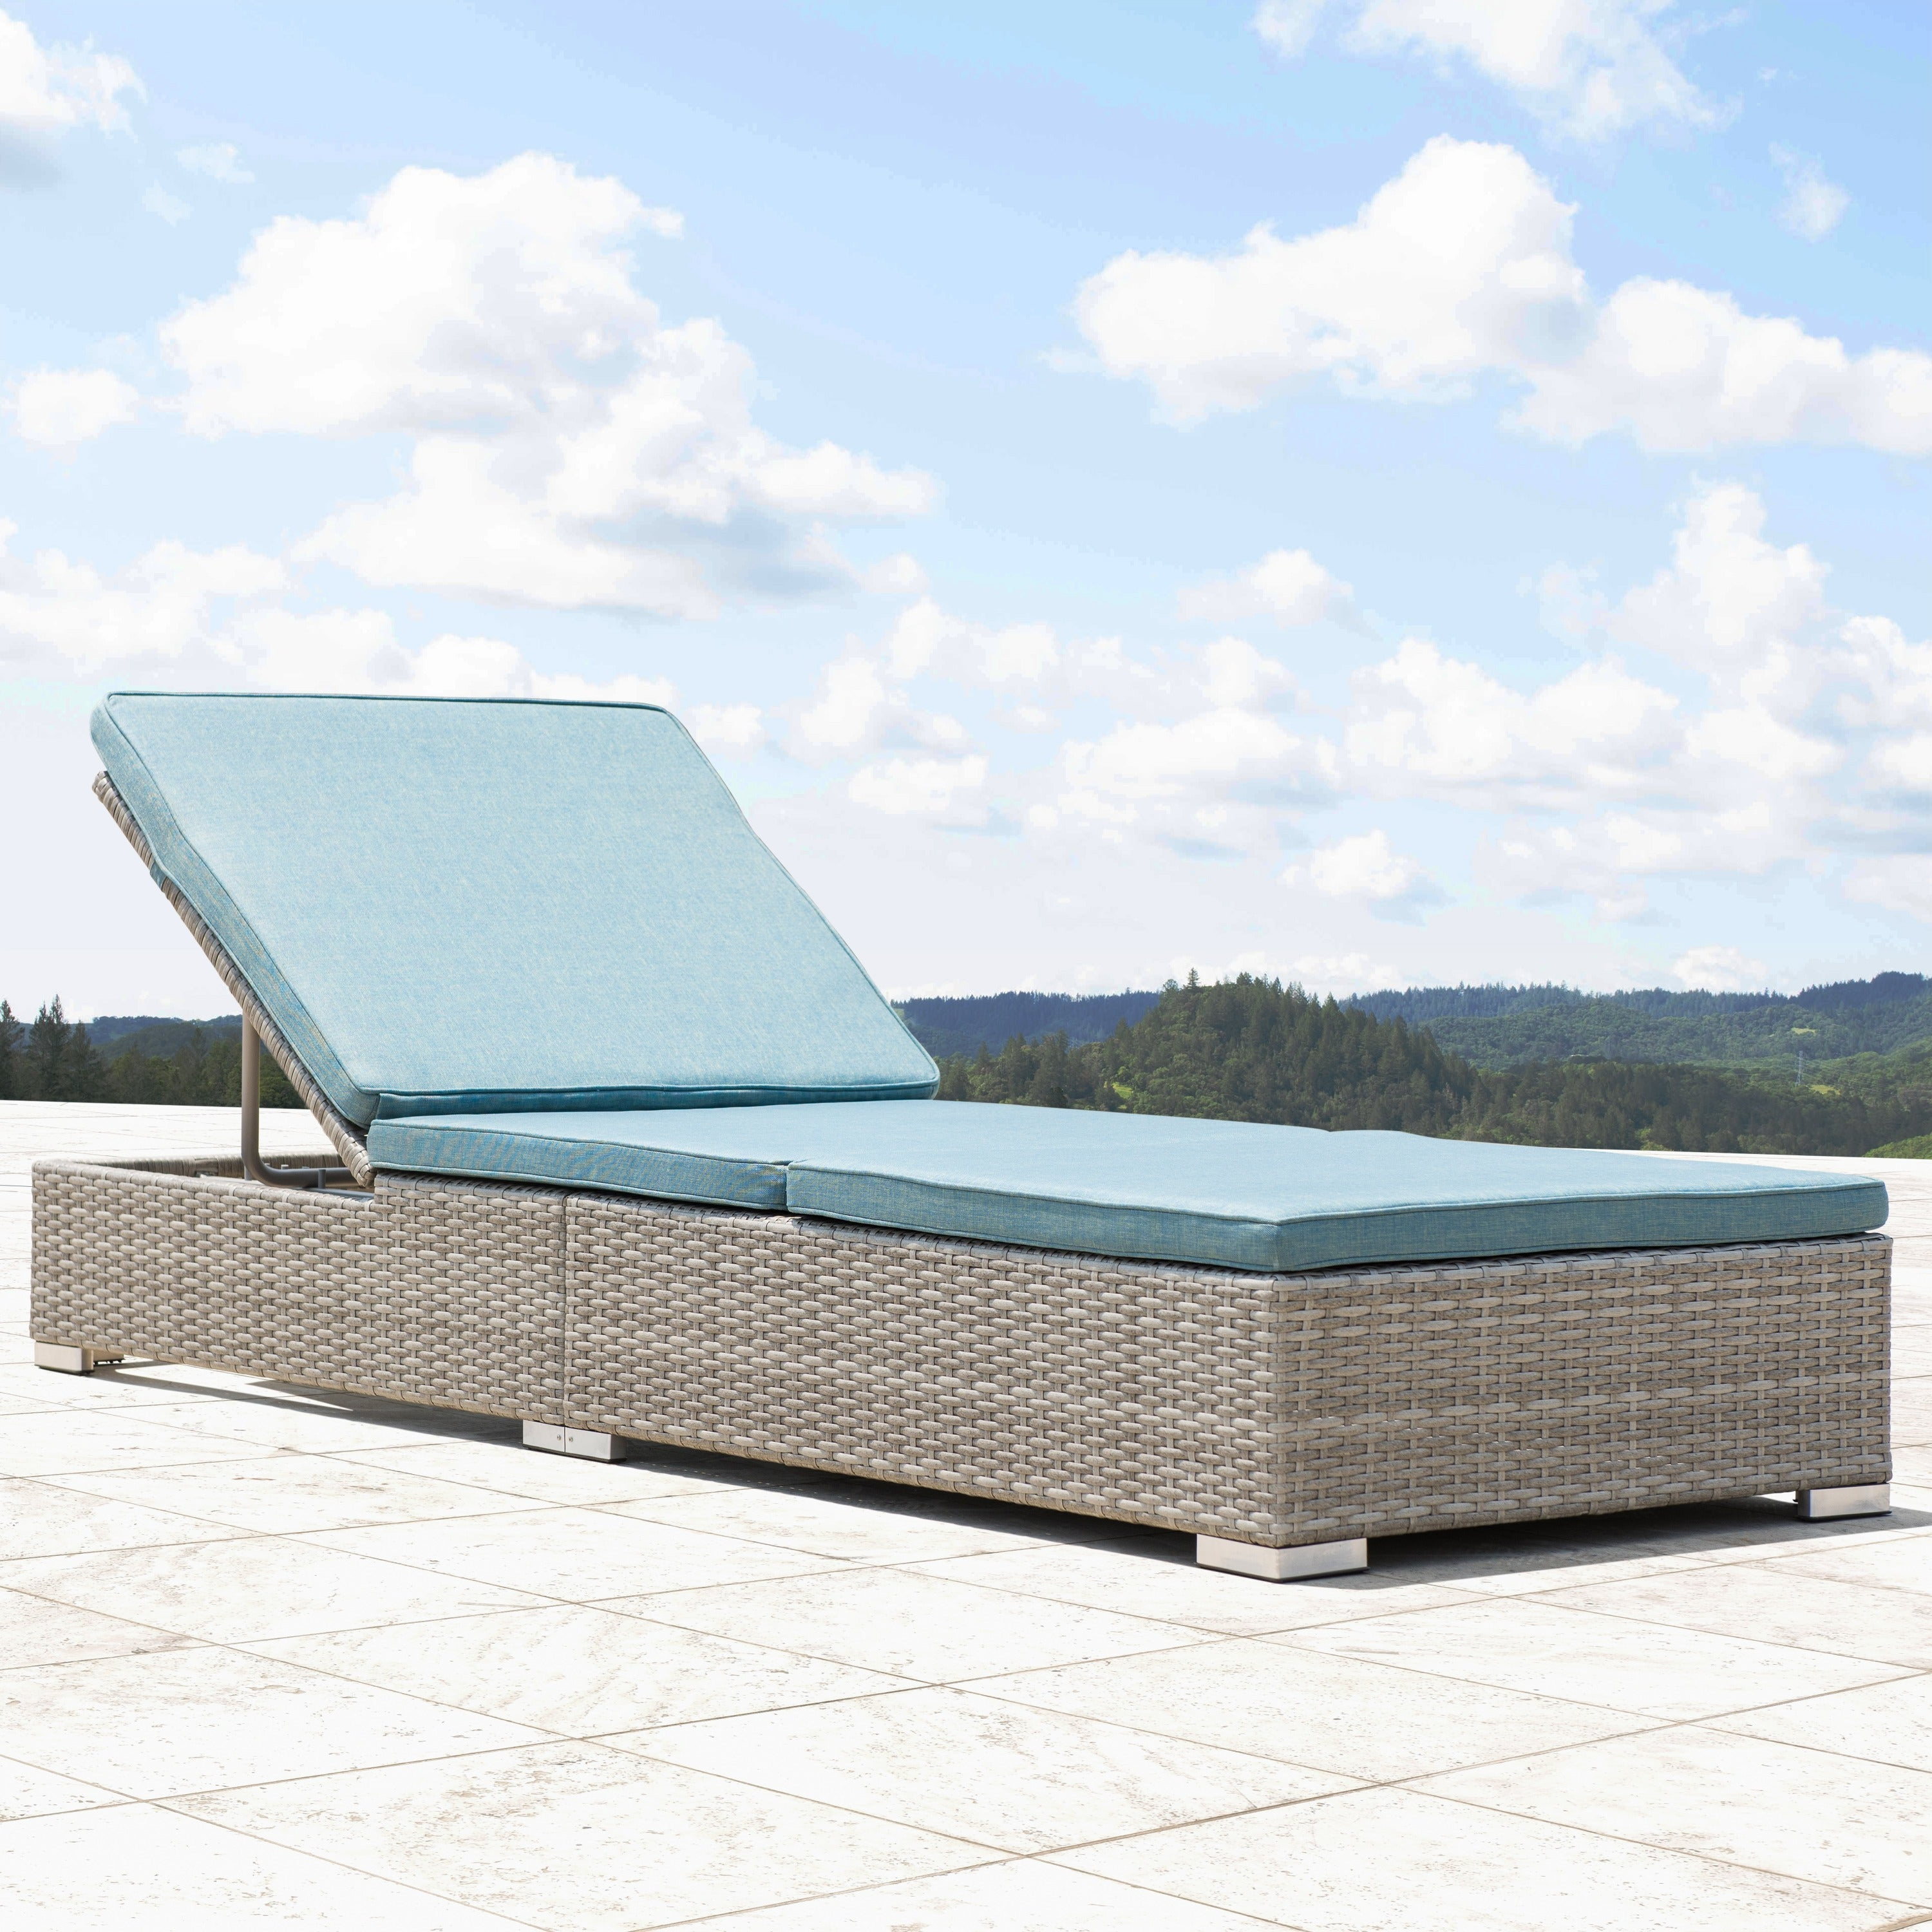 Preferred Outdoor Wicker Adjustable Chaise Lounges With Cushions In Corvus Outdoor Wicker Adjustable Chaise Lounges With Cushions (Set Of 2) (View 18 of 25)